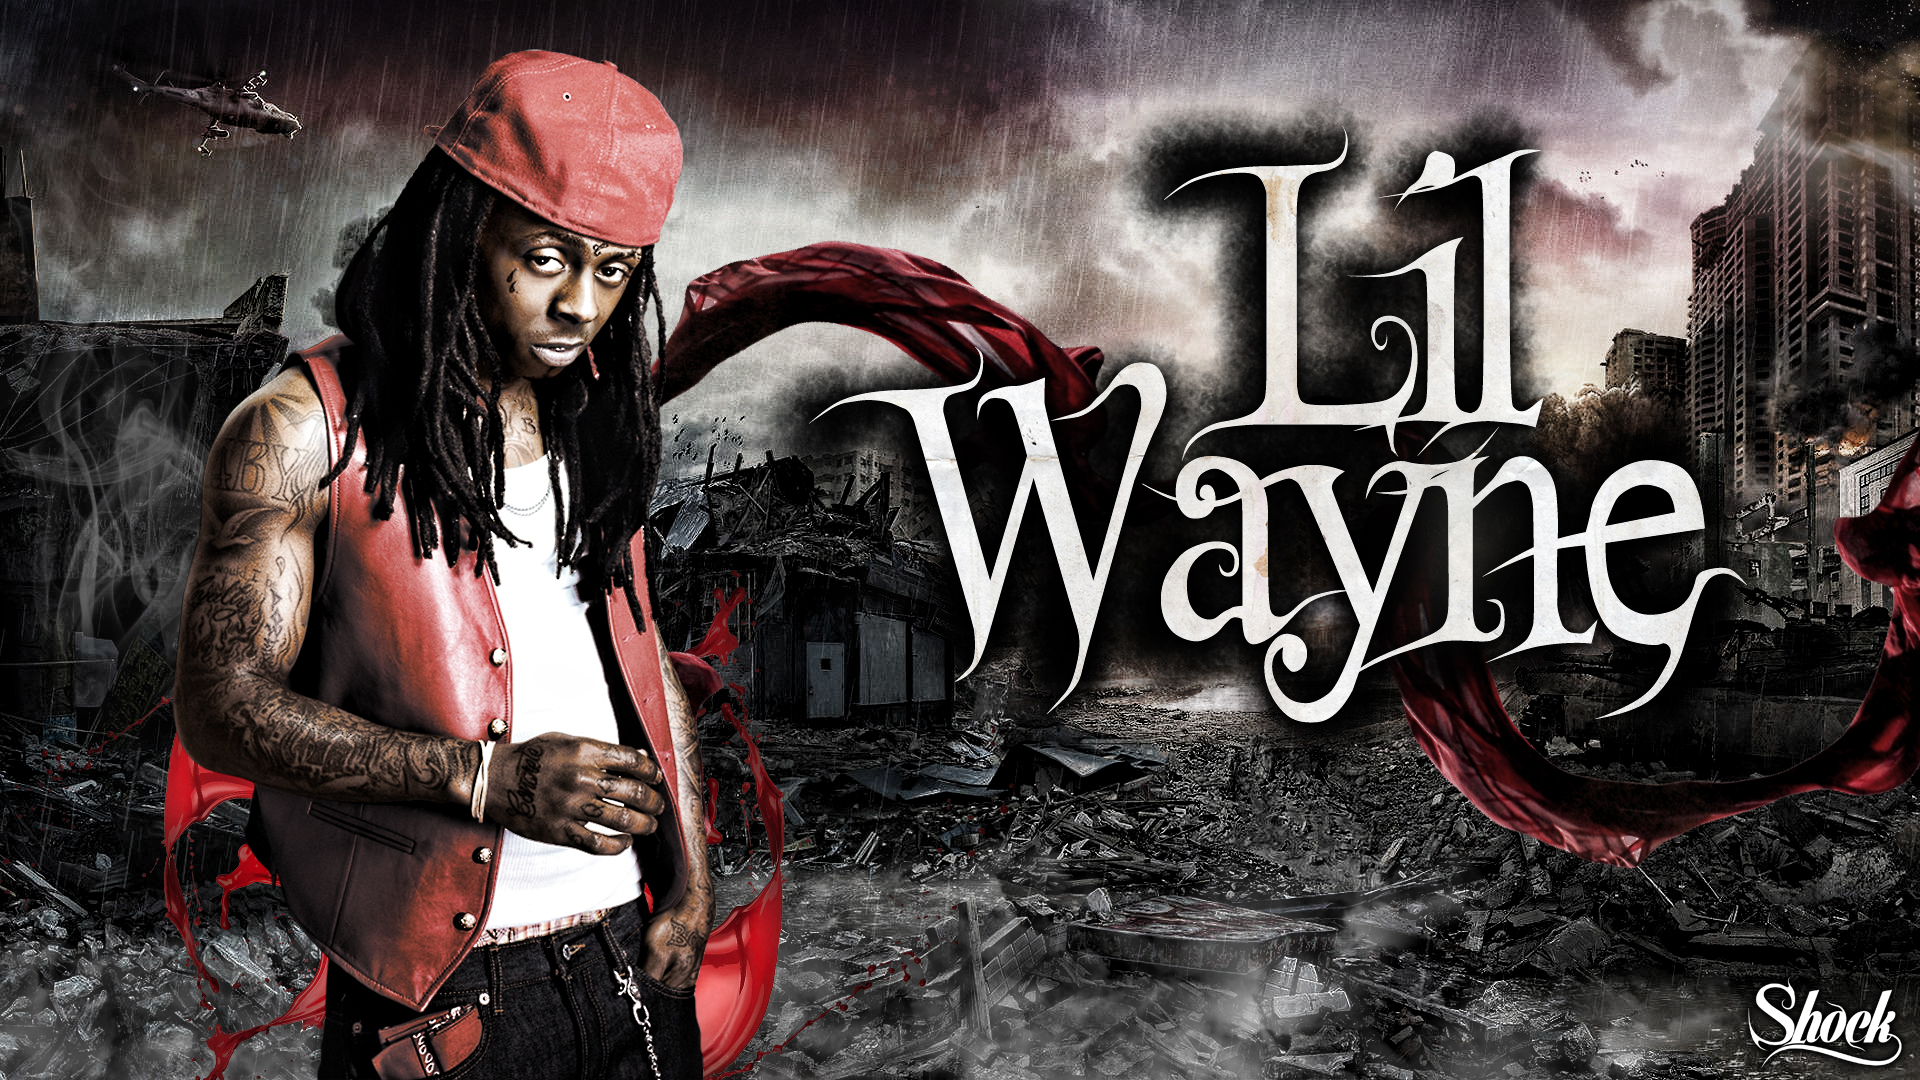 Lil Wayne 2015 Wallpaper Hd